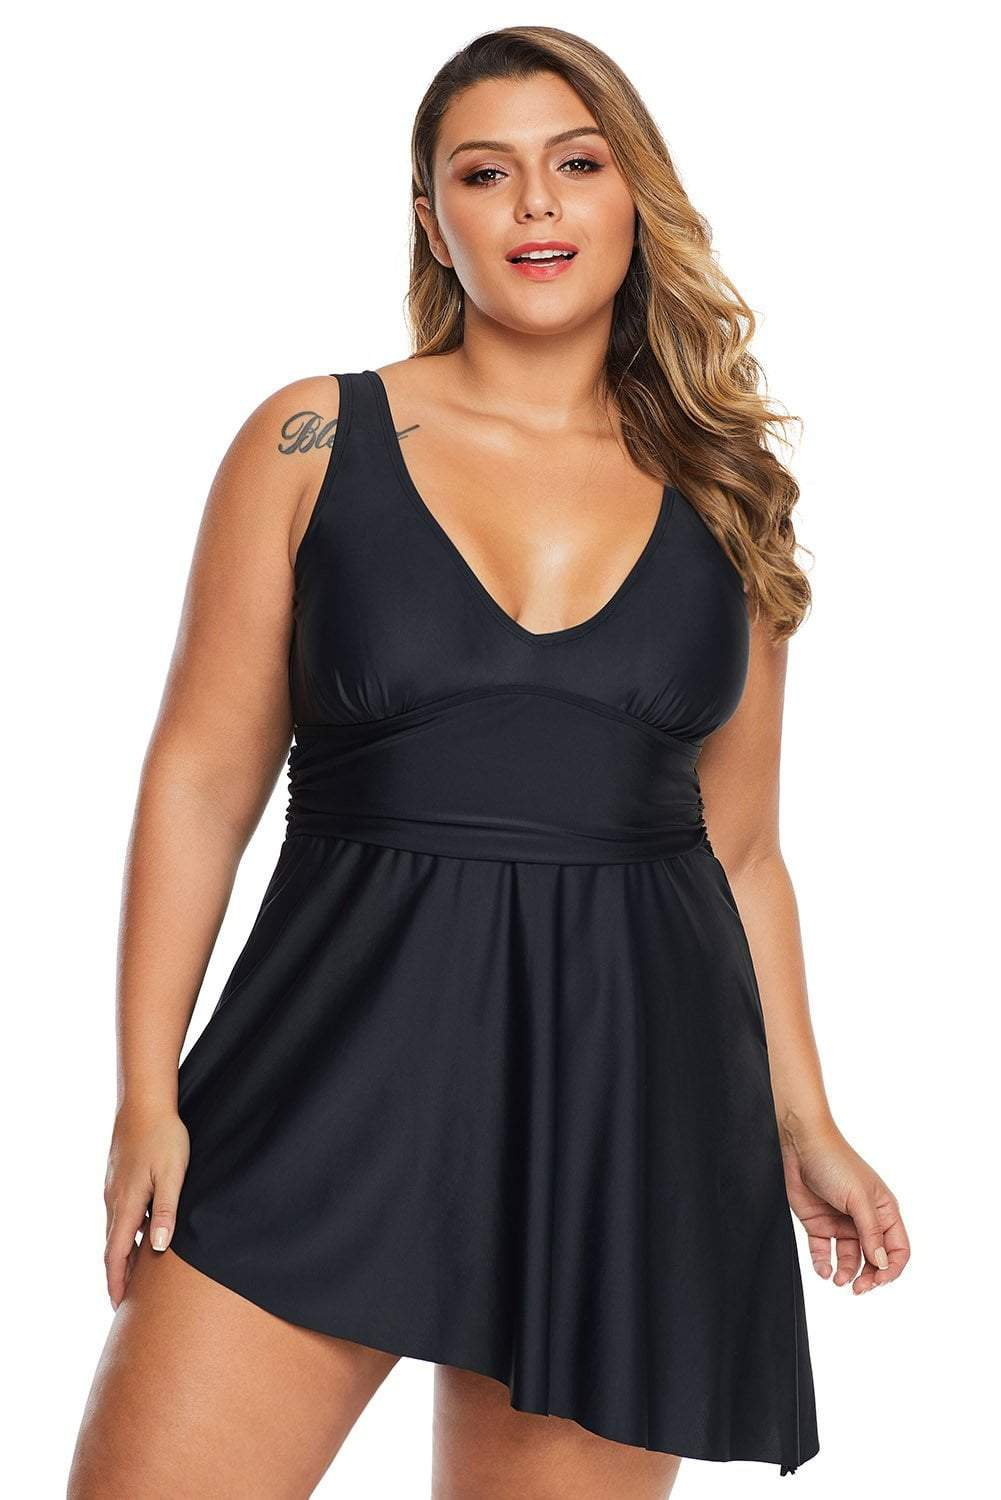 plus size One Piece L / AUS 14 / Black Keira Swim Dress